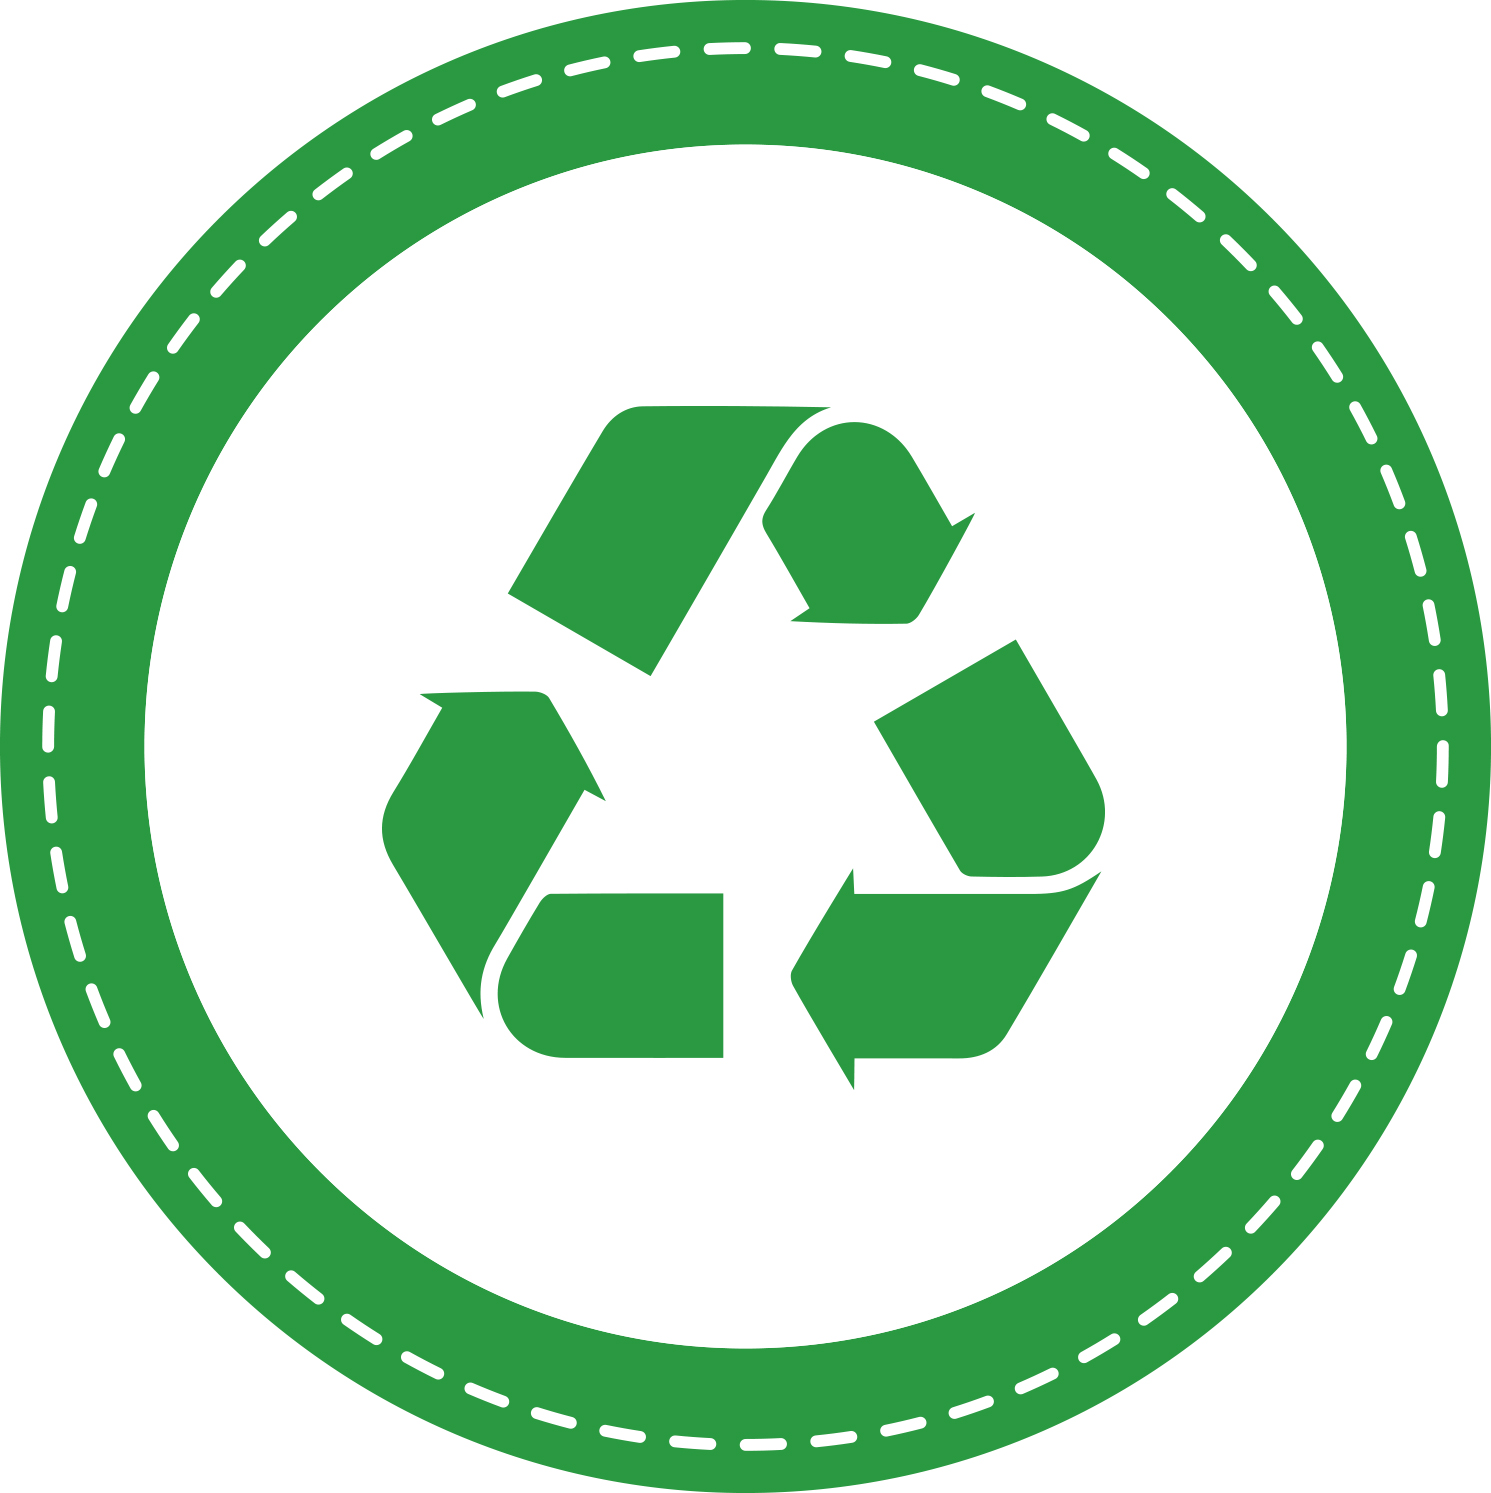 QN recycleable packaging icon